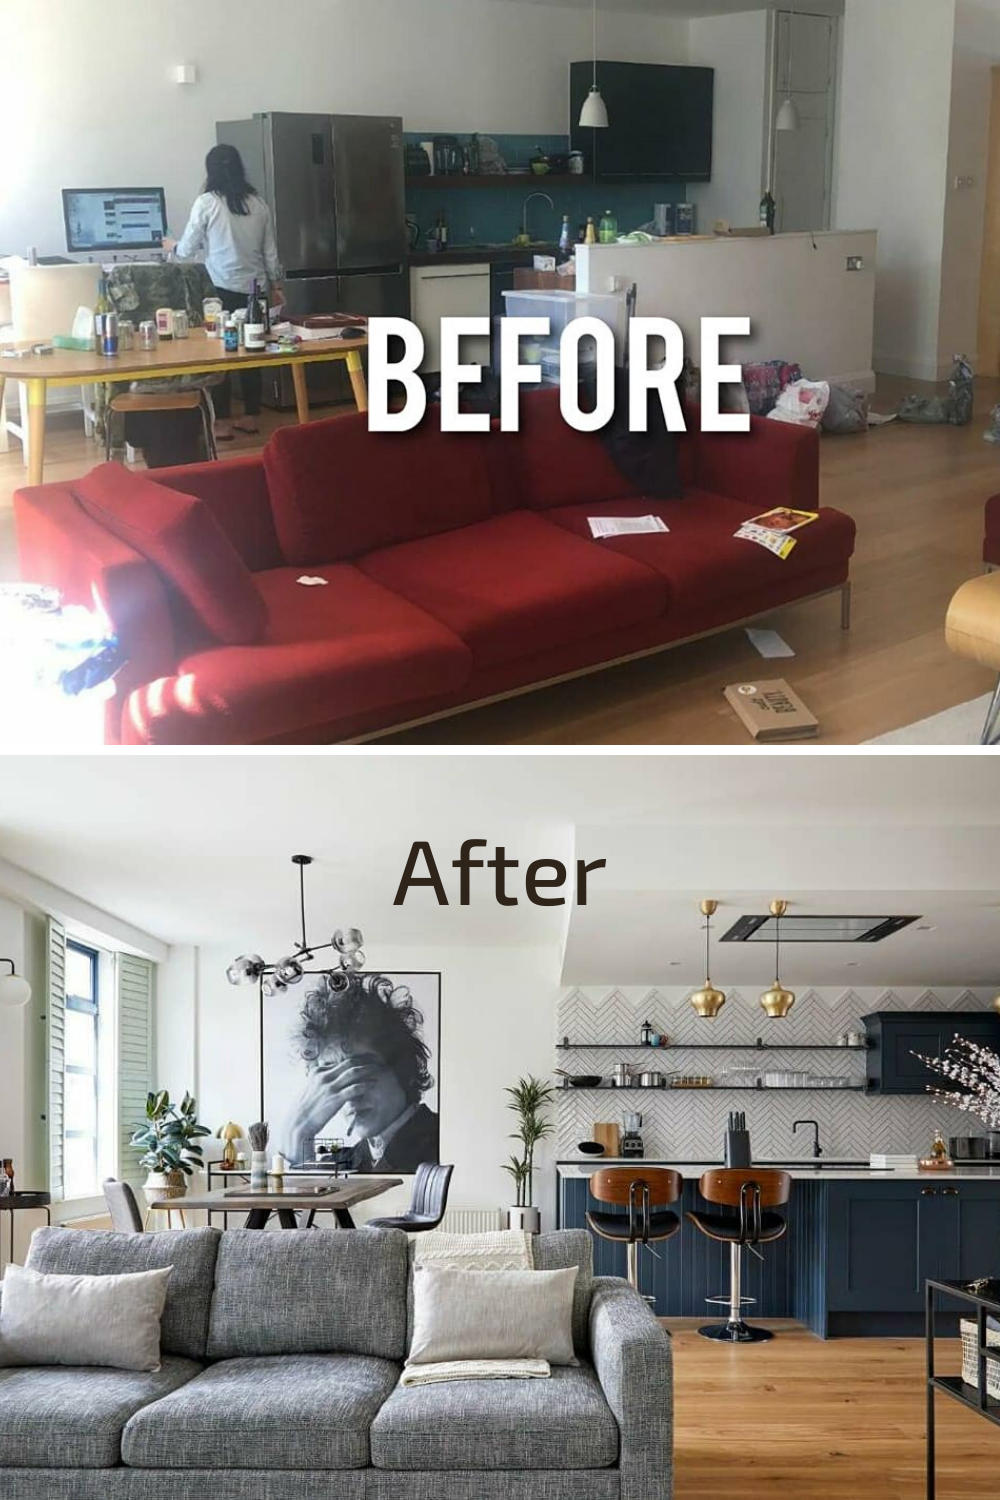 Before and After Interior Transformation